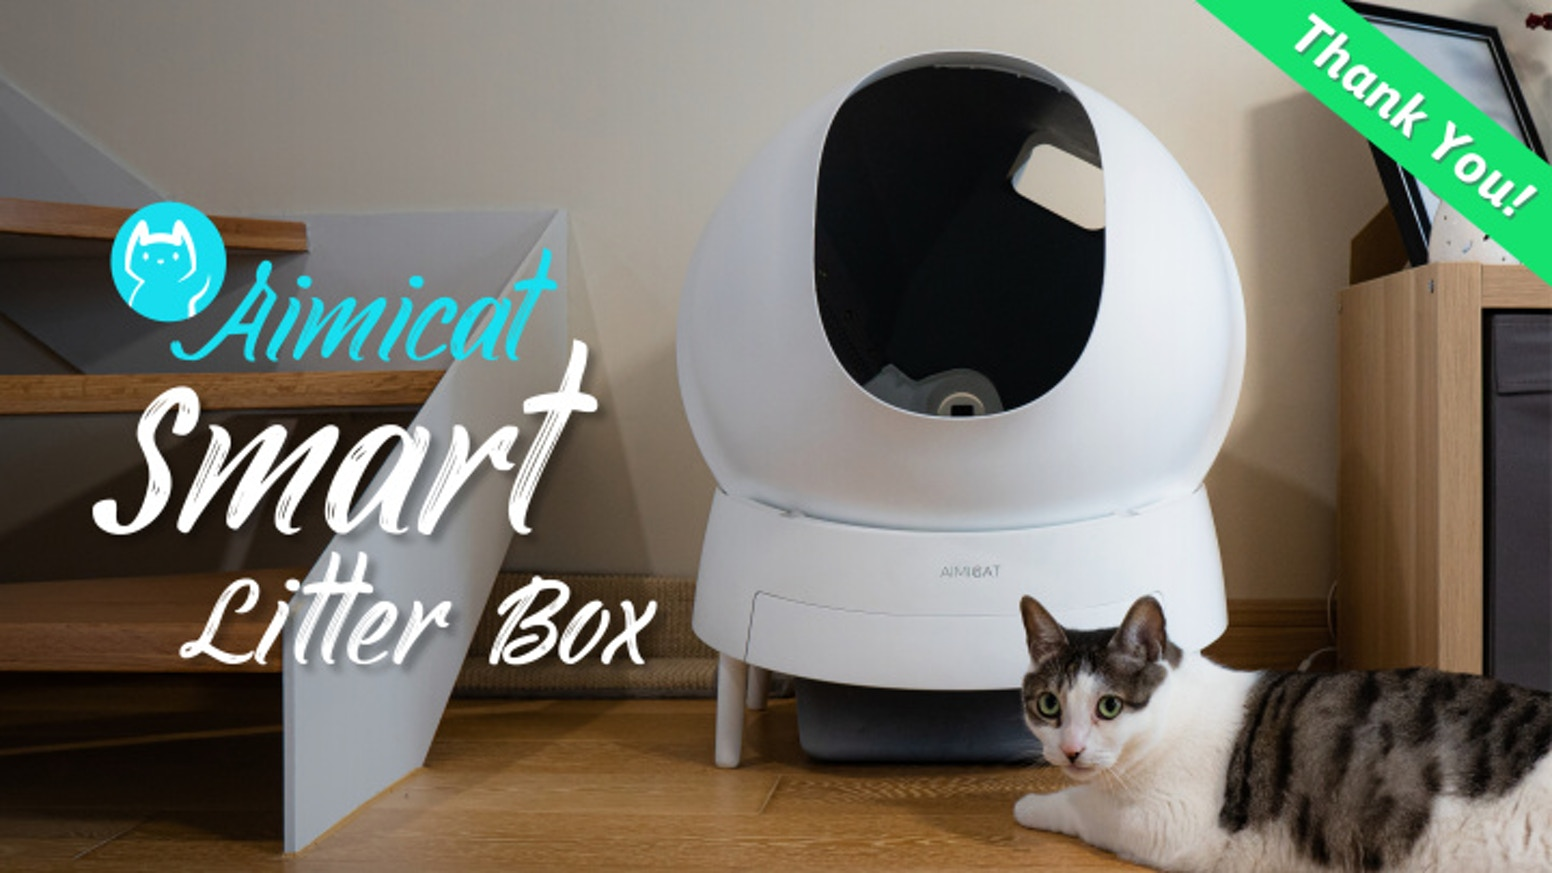 Tidy and Hygienic Smart Litter Box for Your Furry Friends